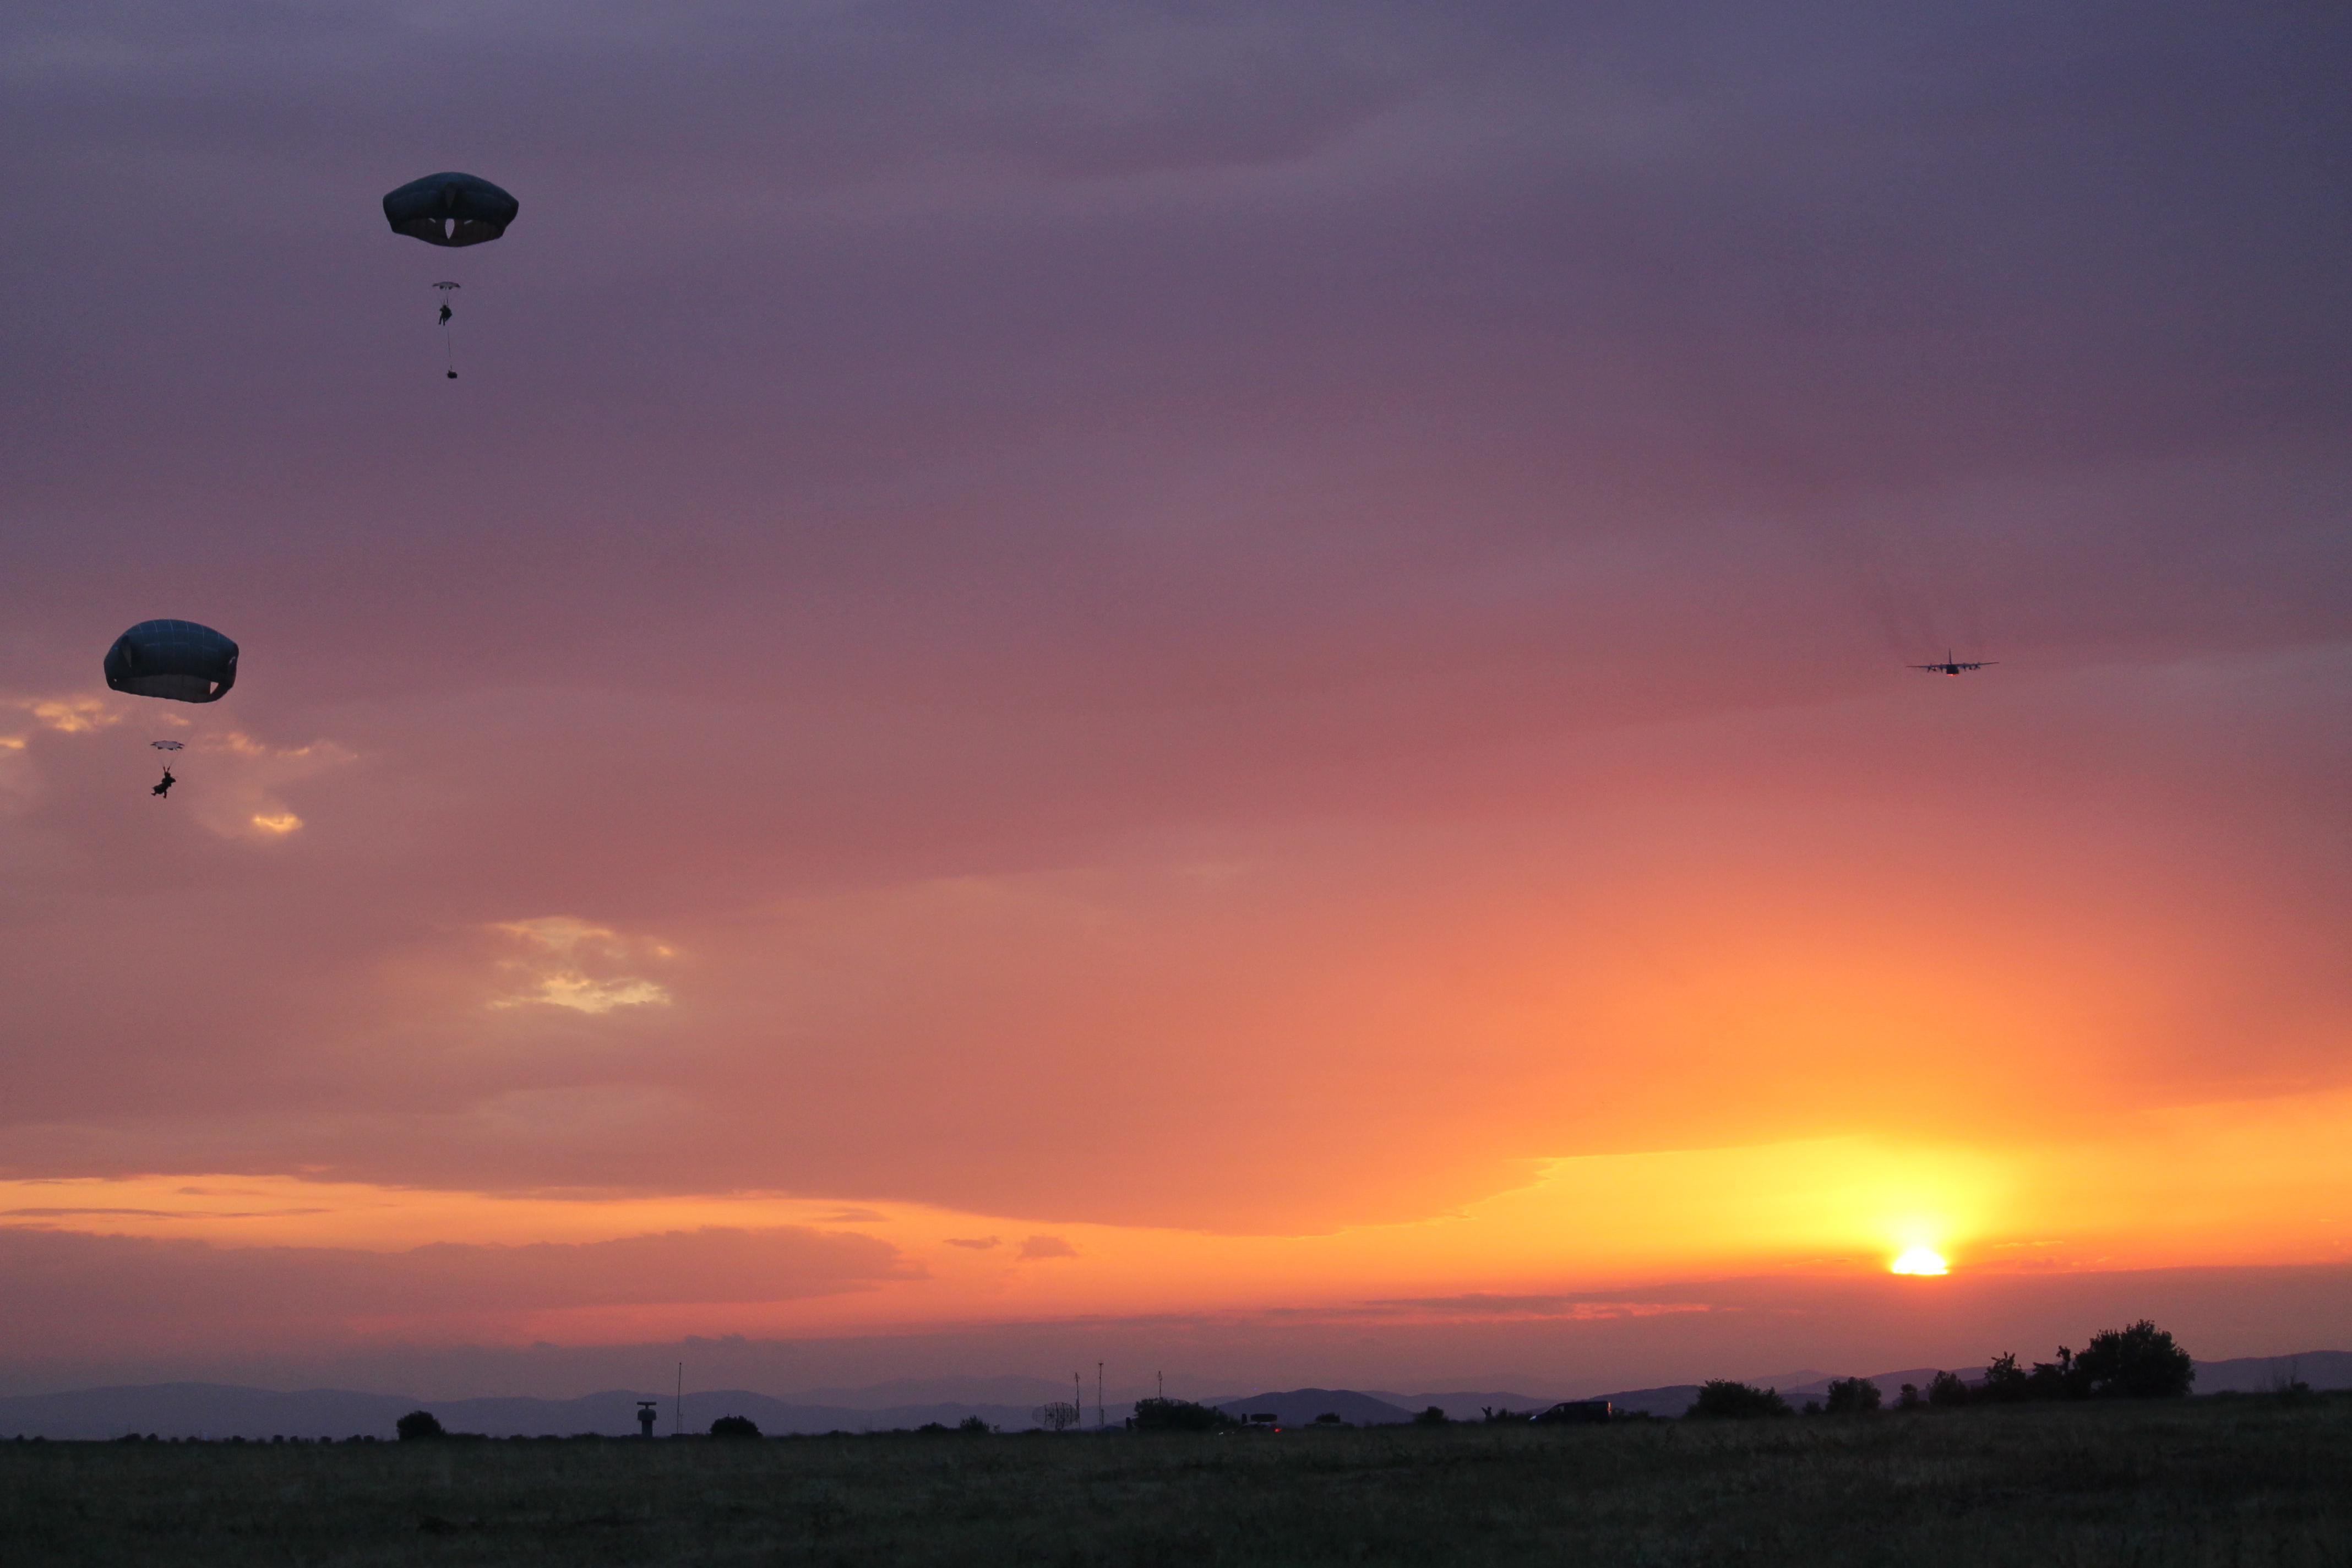 The last of the paratroopers land as a C-130 flies off into the sunset. While there were a dozen injuries that required temporary hospitalization as the result of a jump in Romania, also part of the Saber Guardian exercise, the Bezmer jump had minimal injuries. (Jen Judson/Staff)